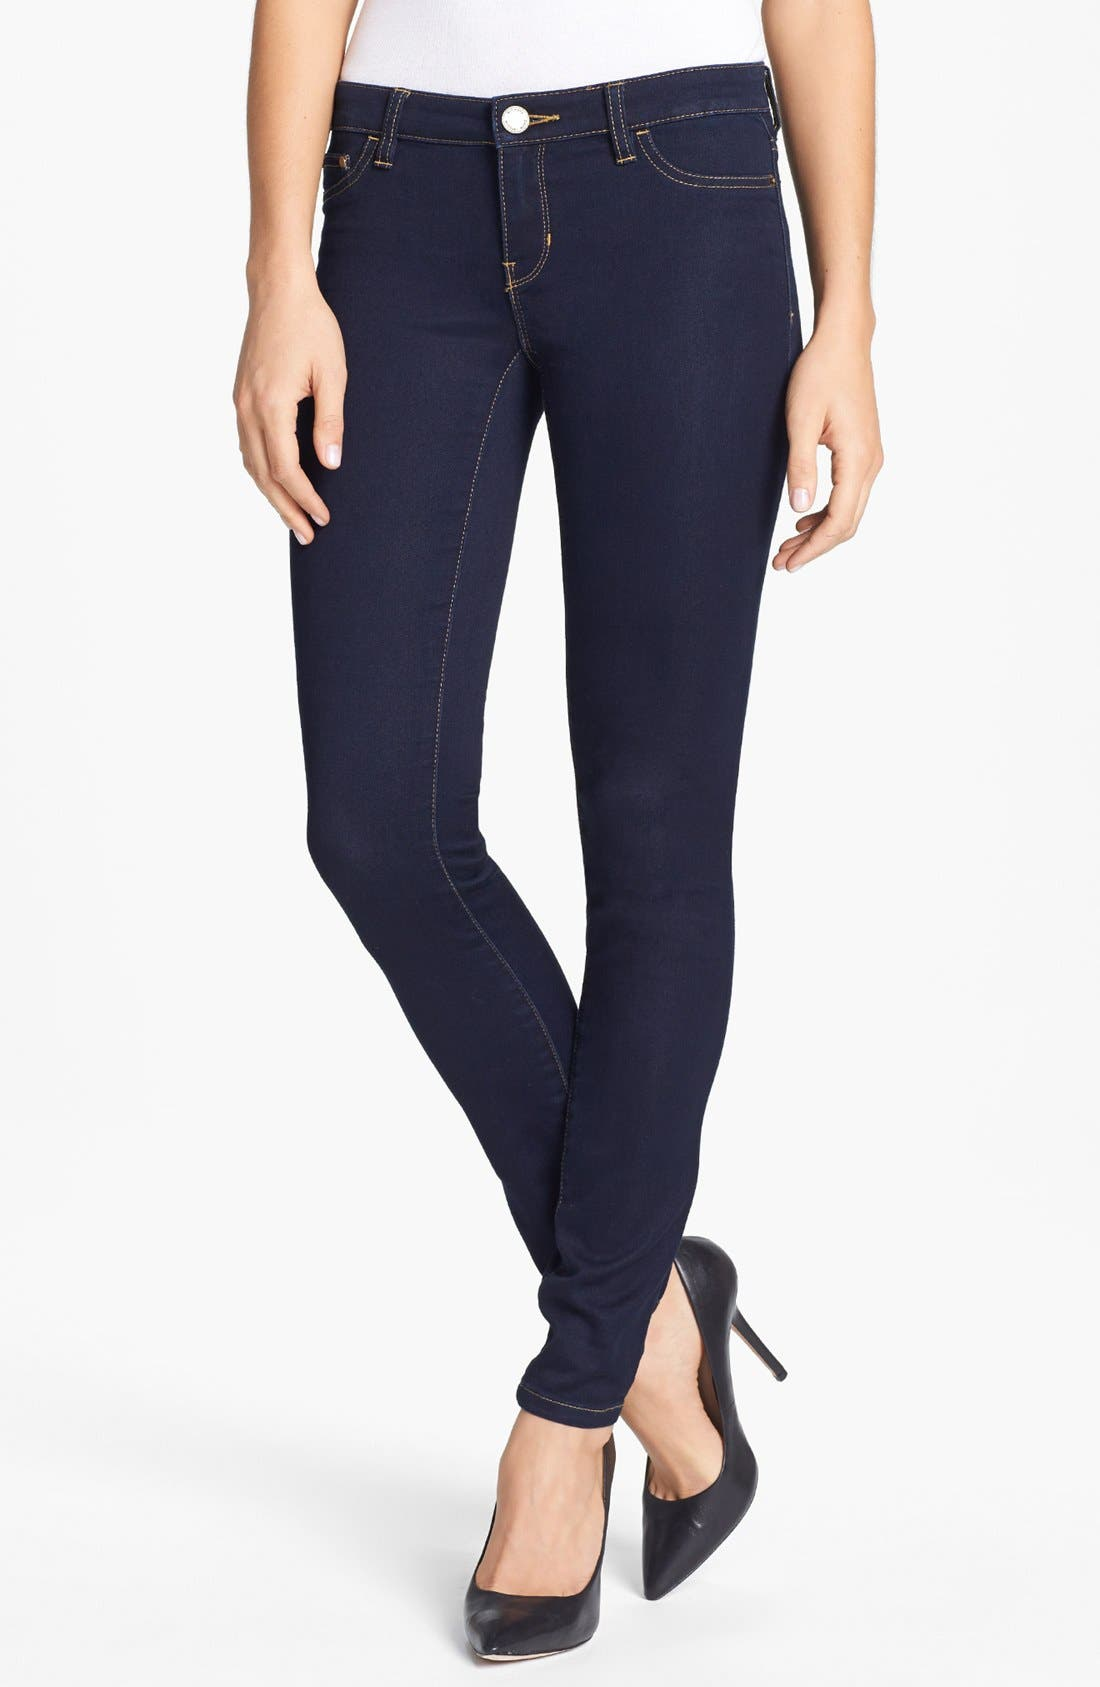 Alternate Image 1 Selected - MICHAEL Michael Kors Stretch Skinny Jeans (Twilight) (Petite)